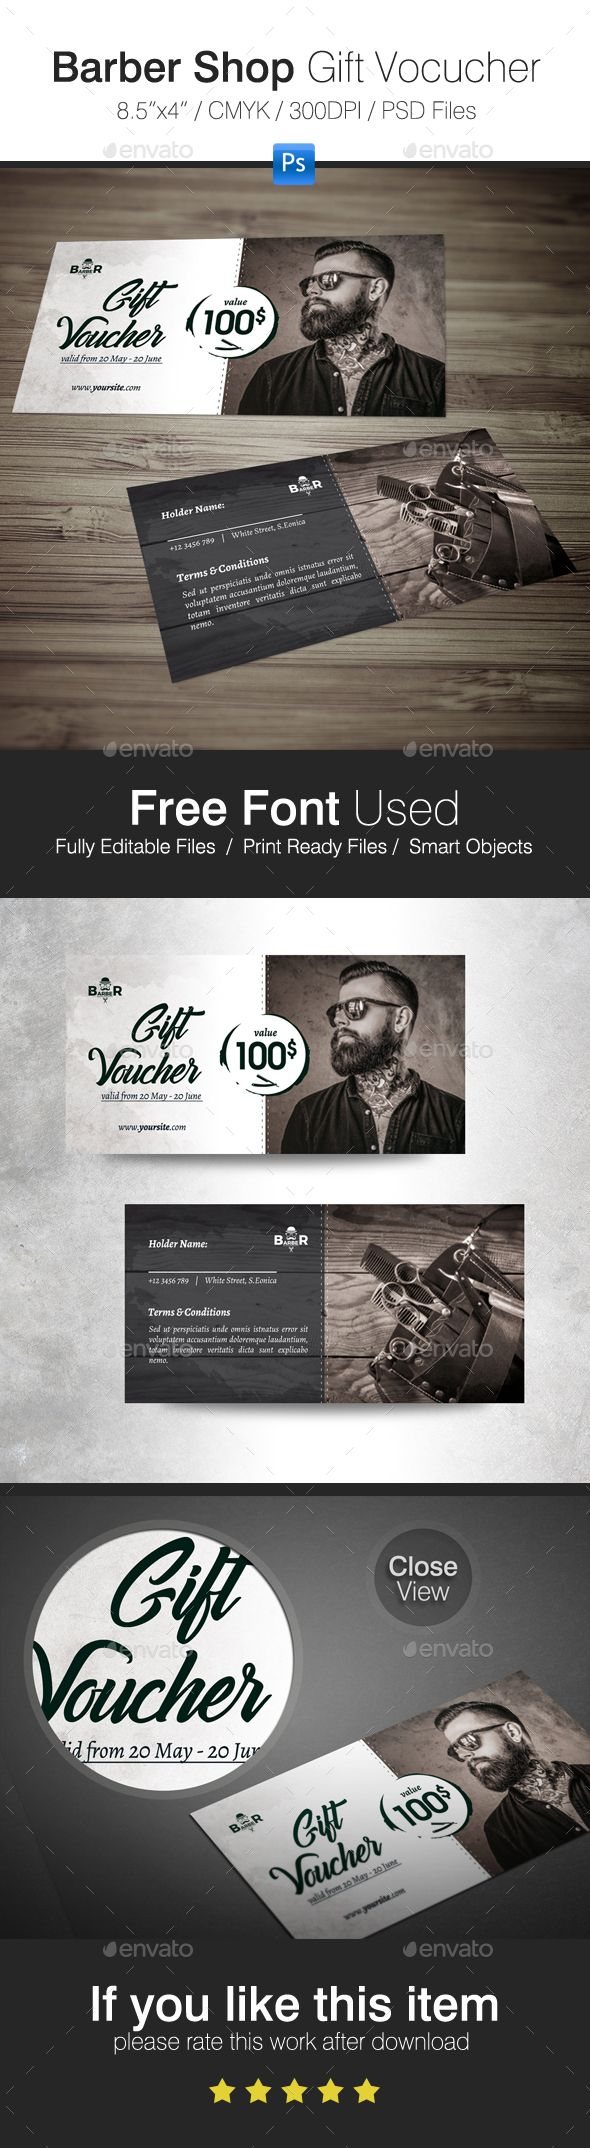 Barber Shop #Gift #Voucher - Cards & #Invites Print Templates